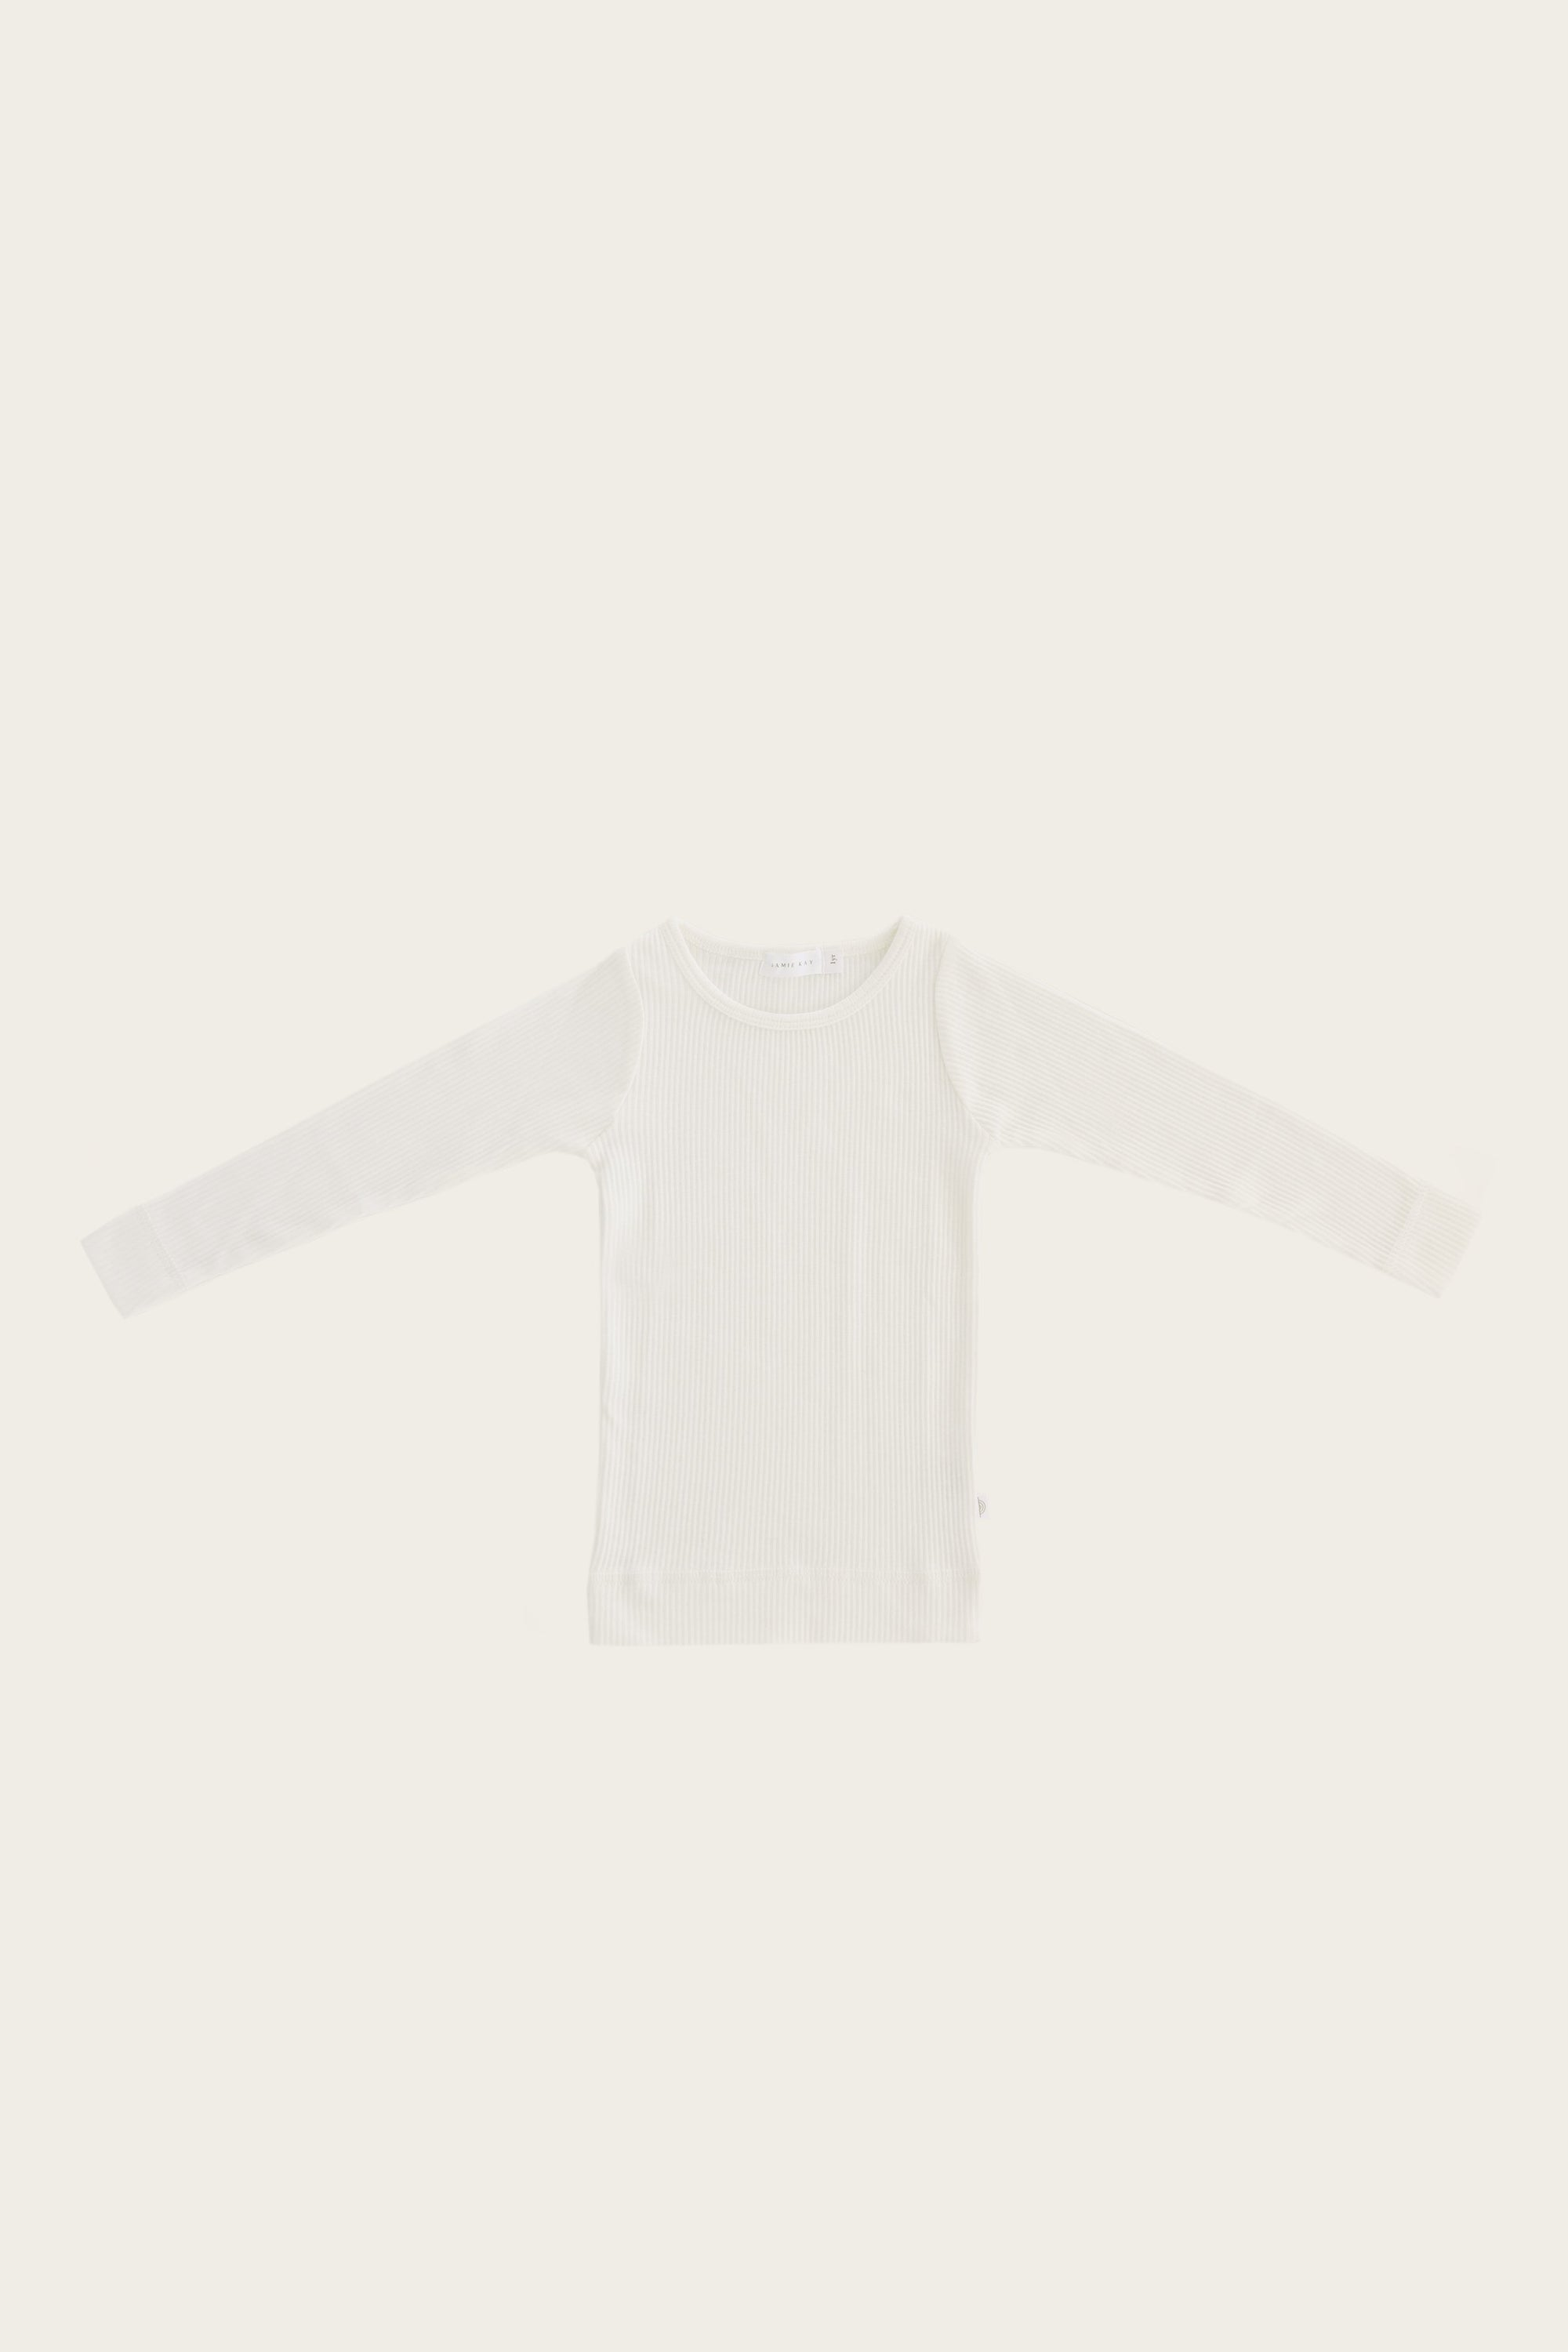 Jamie Kay Organic Essential Long Sleeve Top, Milk